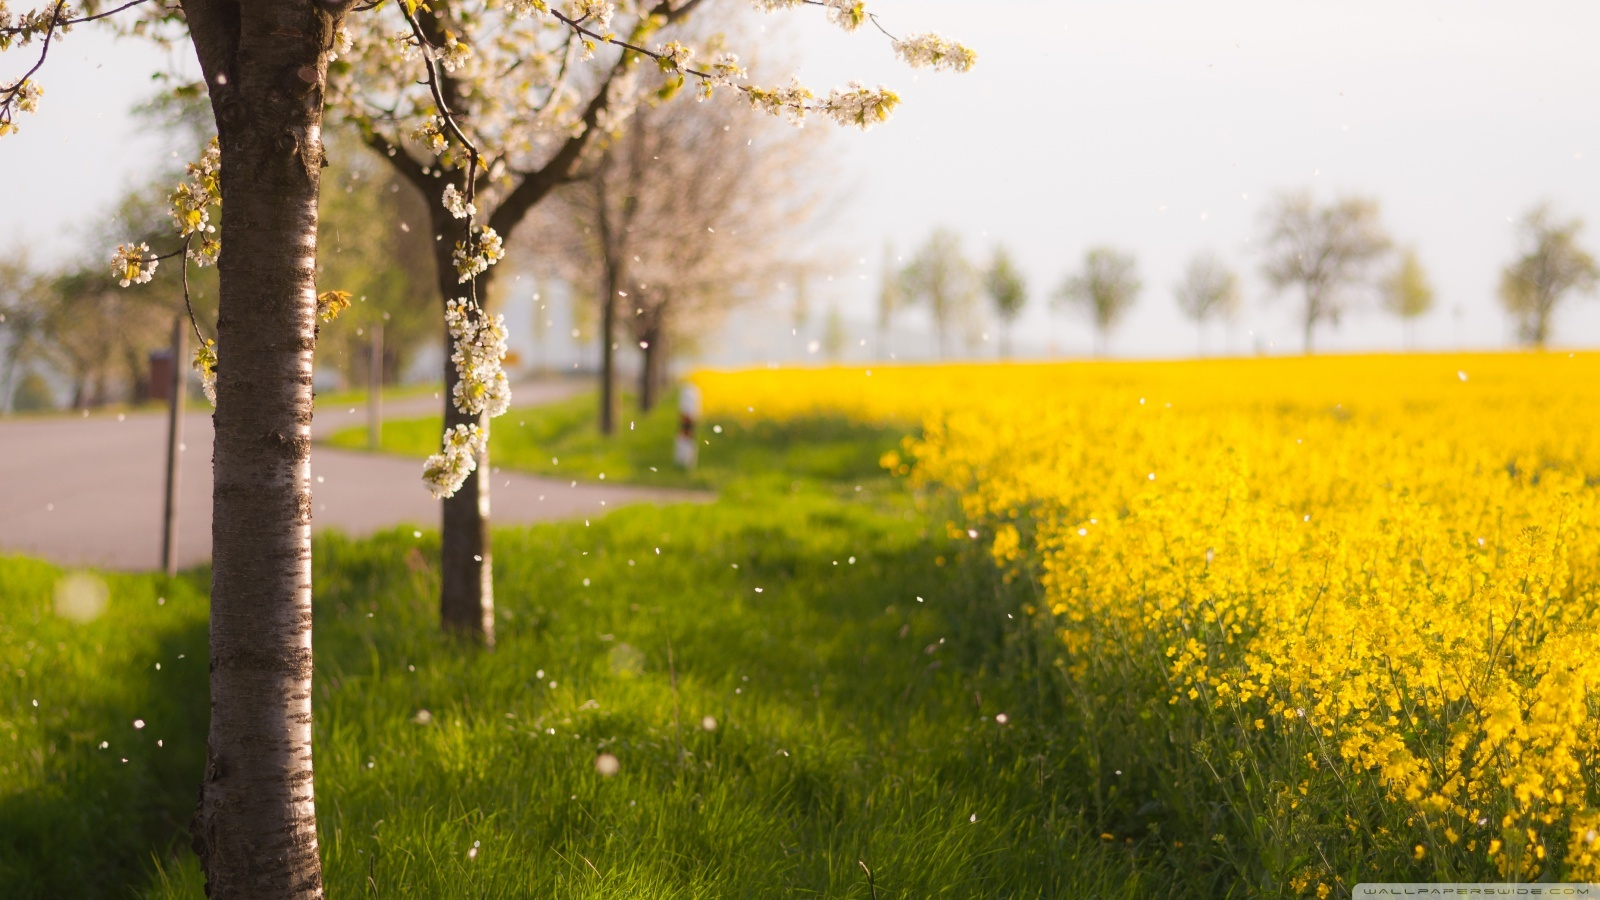 17998 download wallpaper Landscape, Flowers, Trees, Fields screensavers and pictures for free